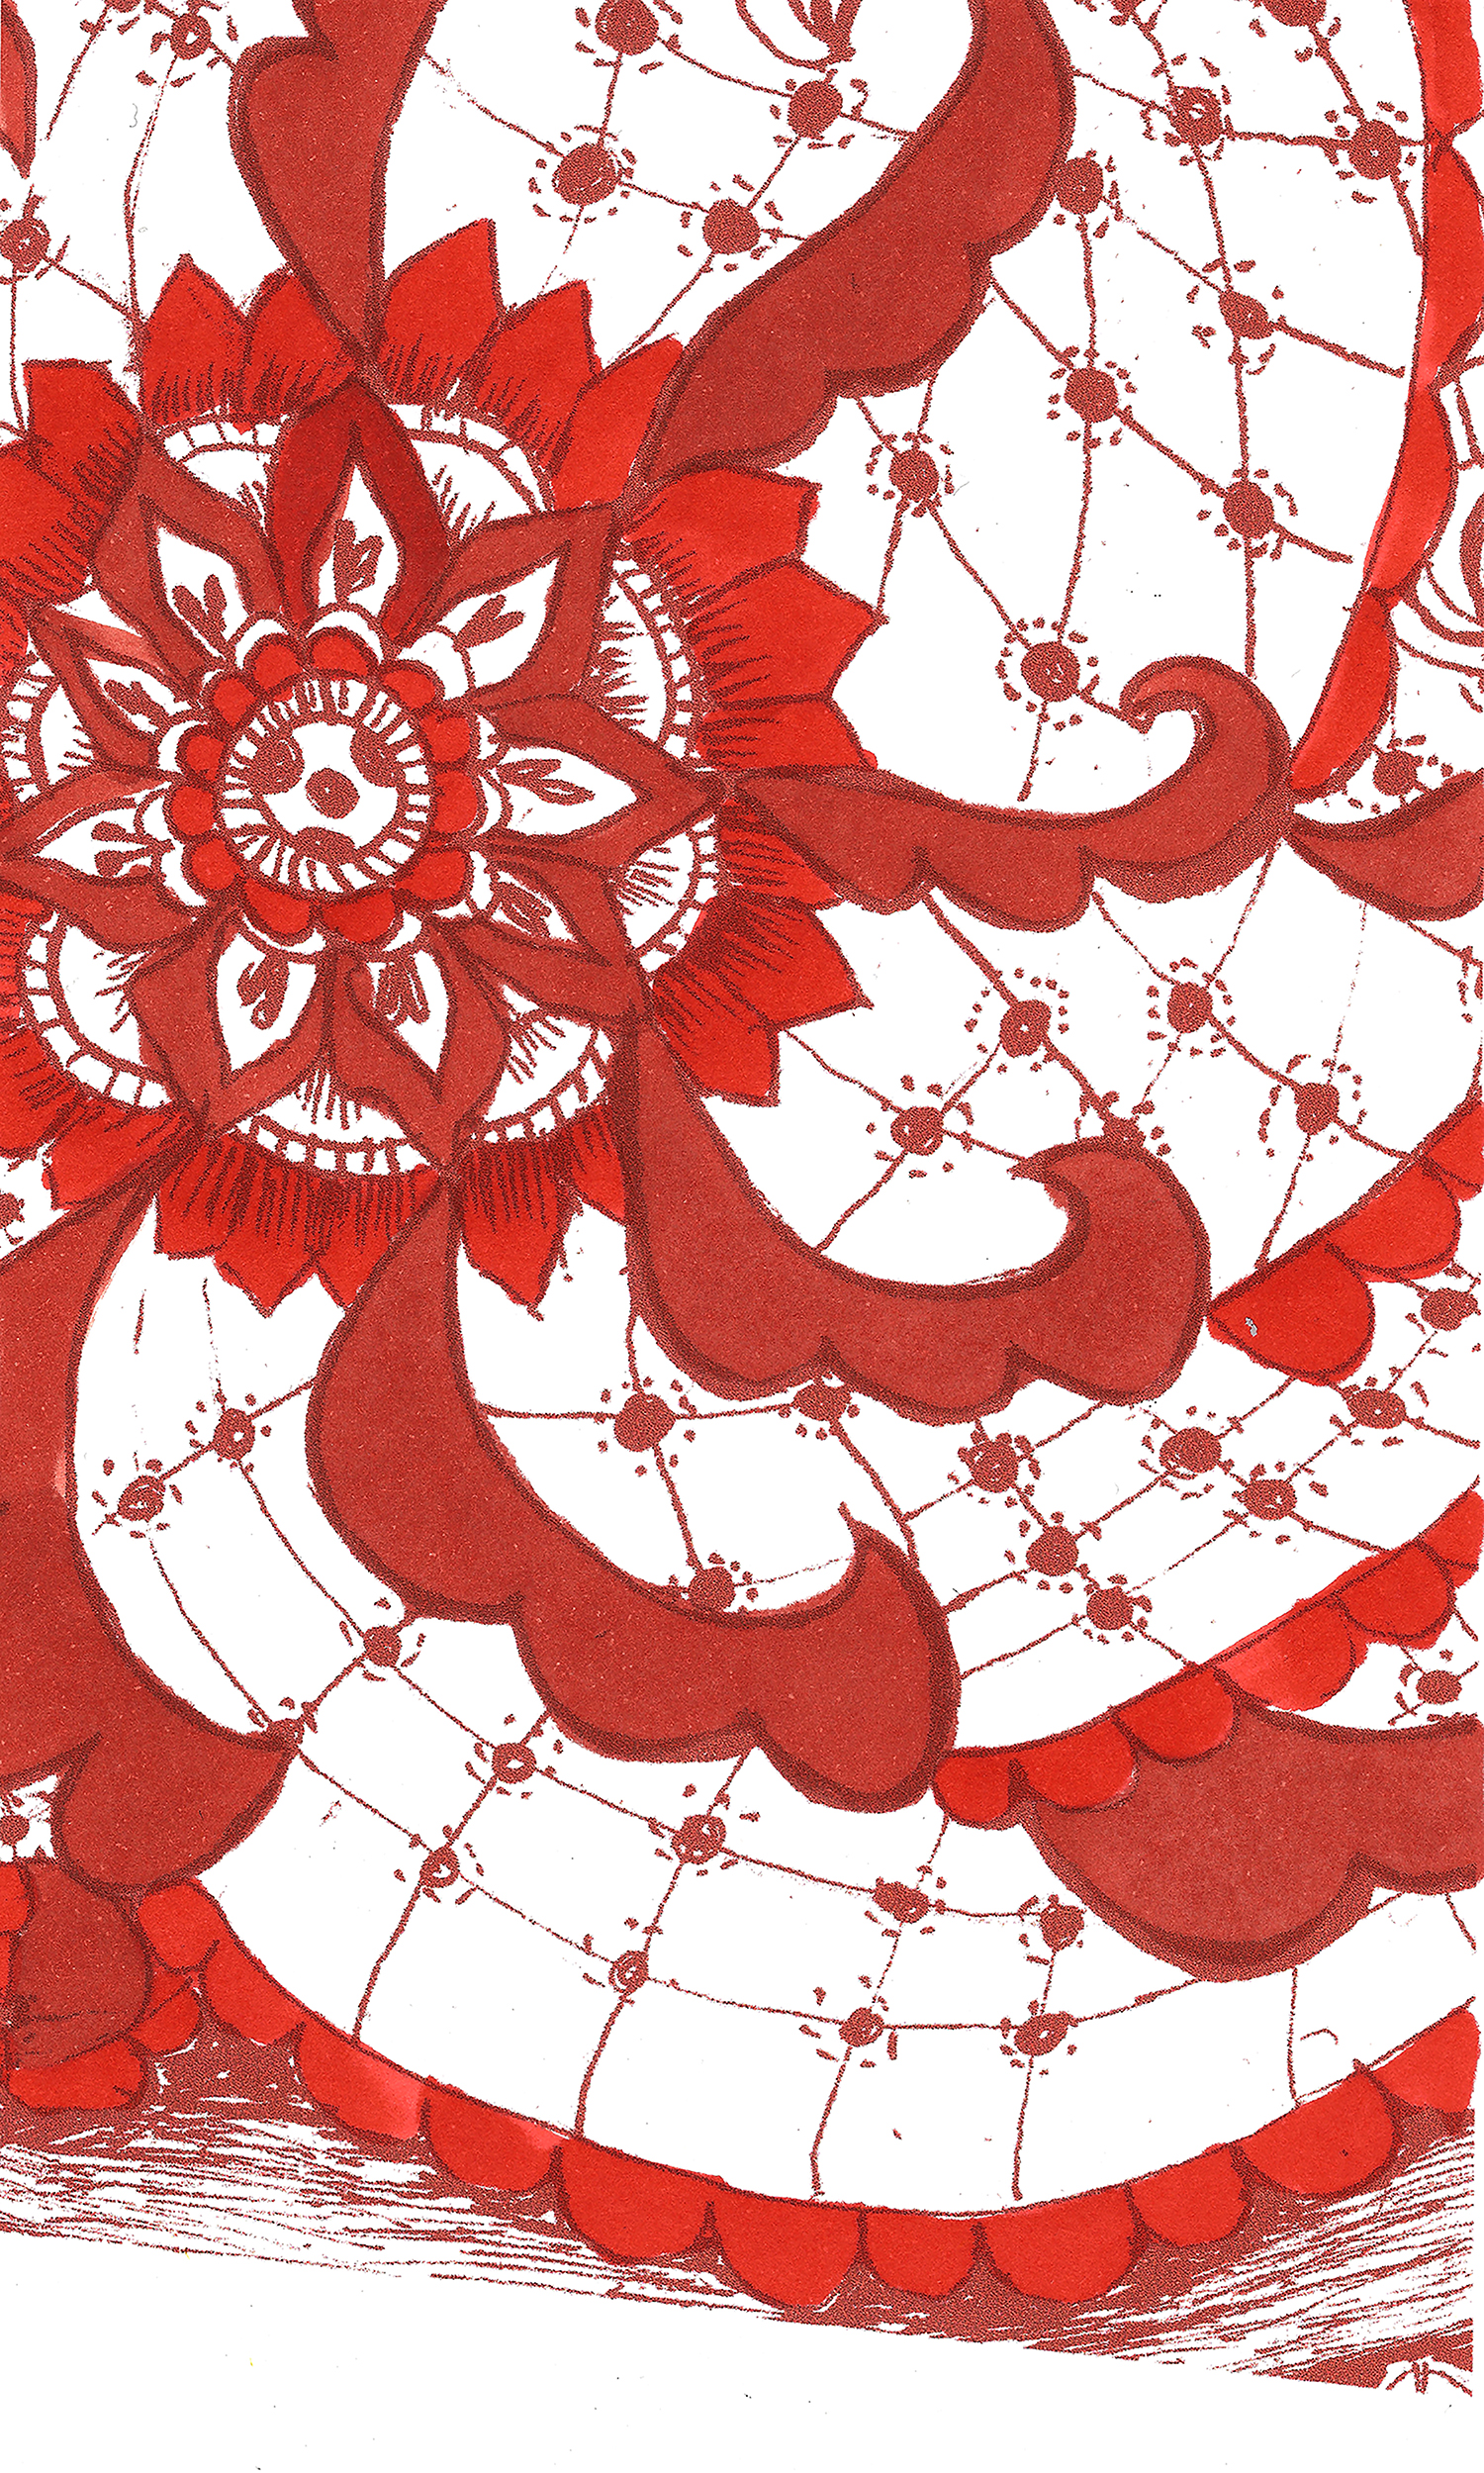 Indian Cuisine  This pattern is influenced by the country's traditional mehendi forms— for instance, paisley, floral, and other organic shapes.